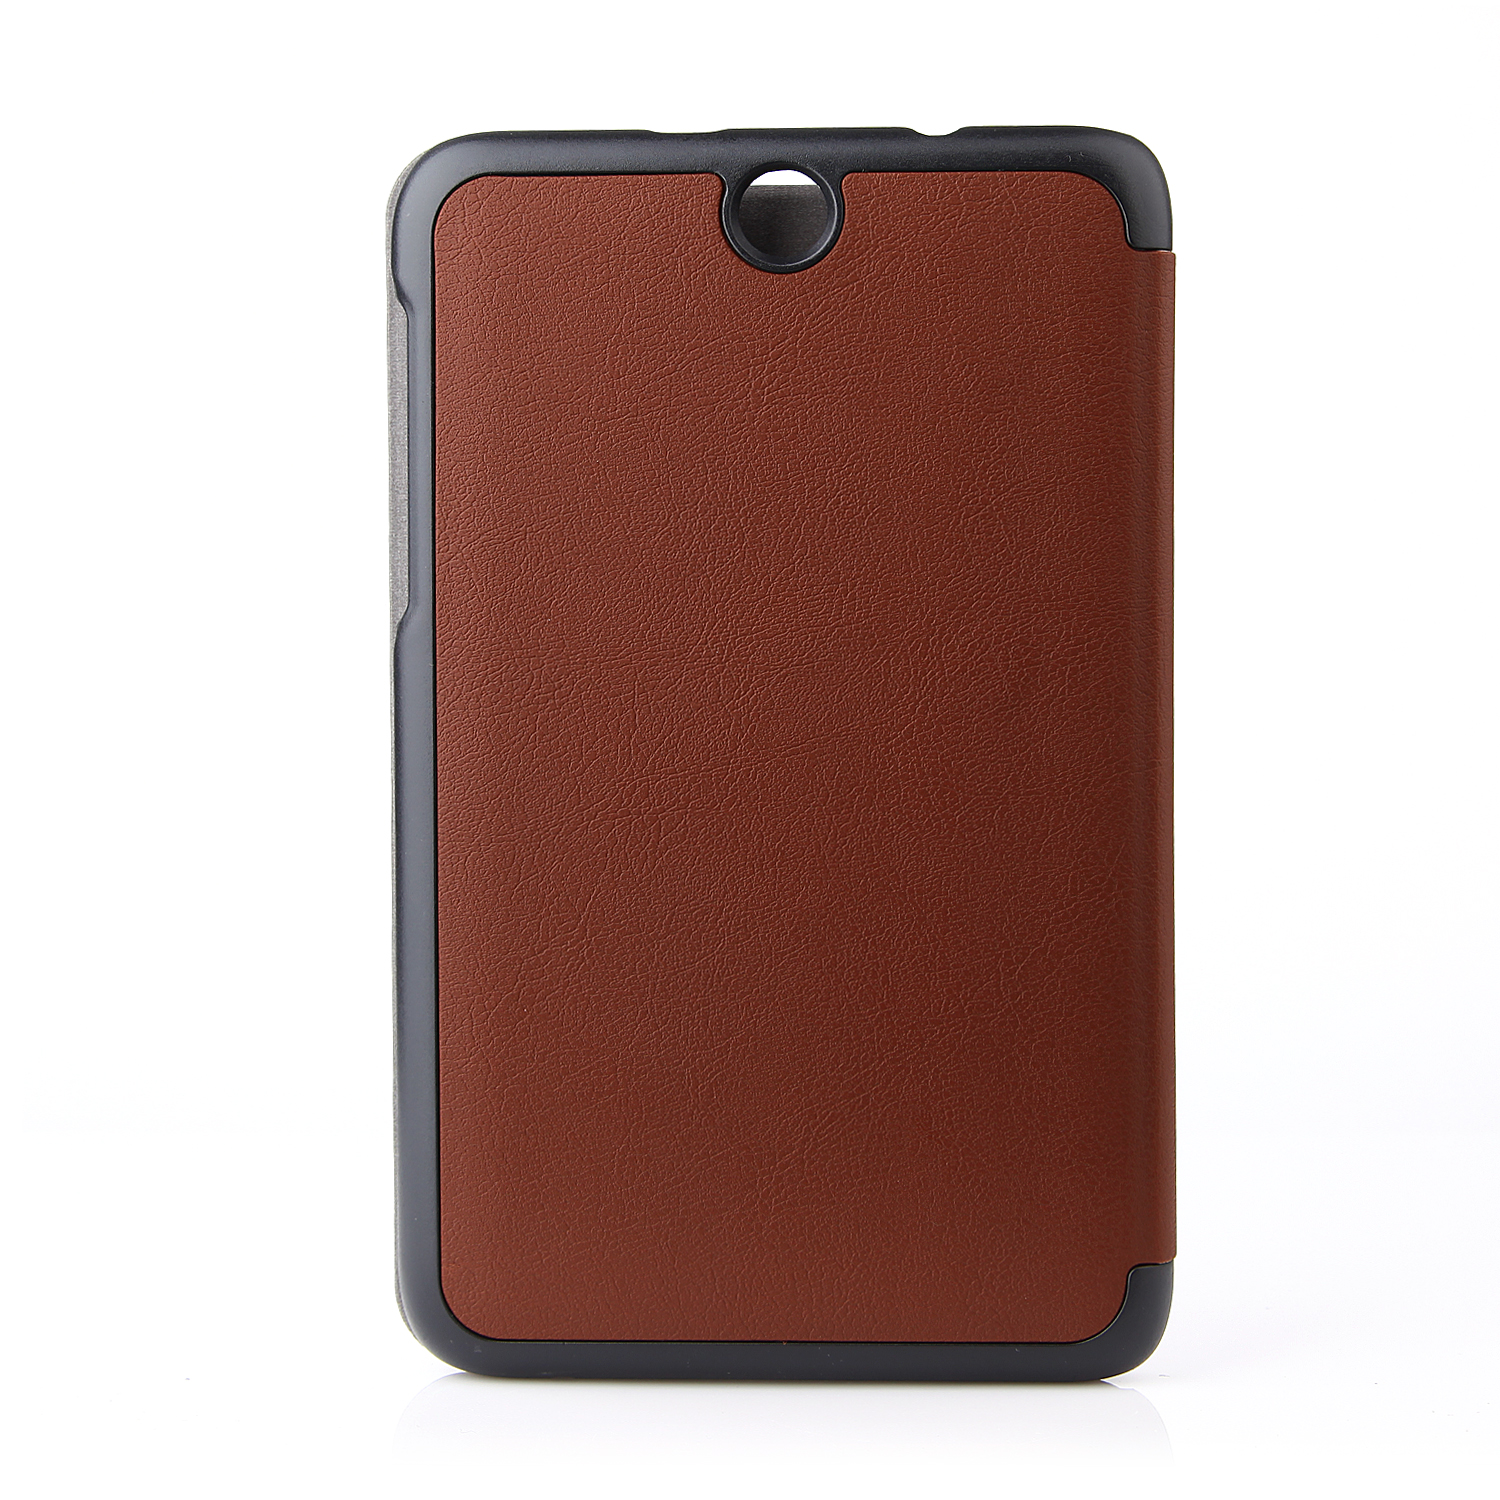 Protective PU Leather Stand Case Cover for Lenovo A3500 Tablet PC Brown